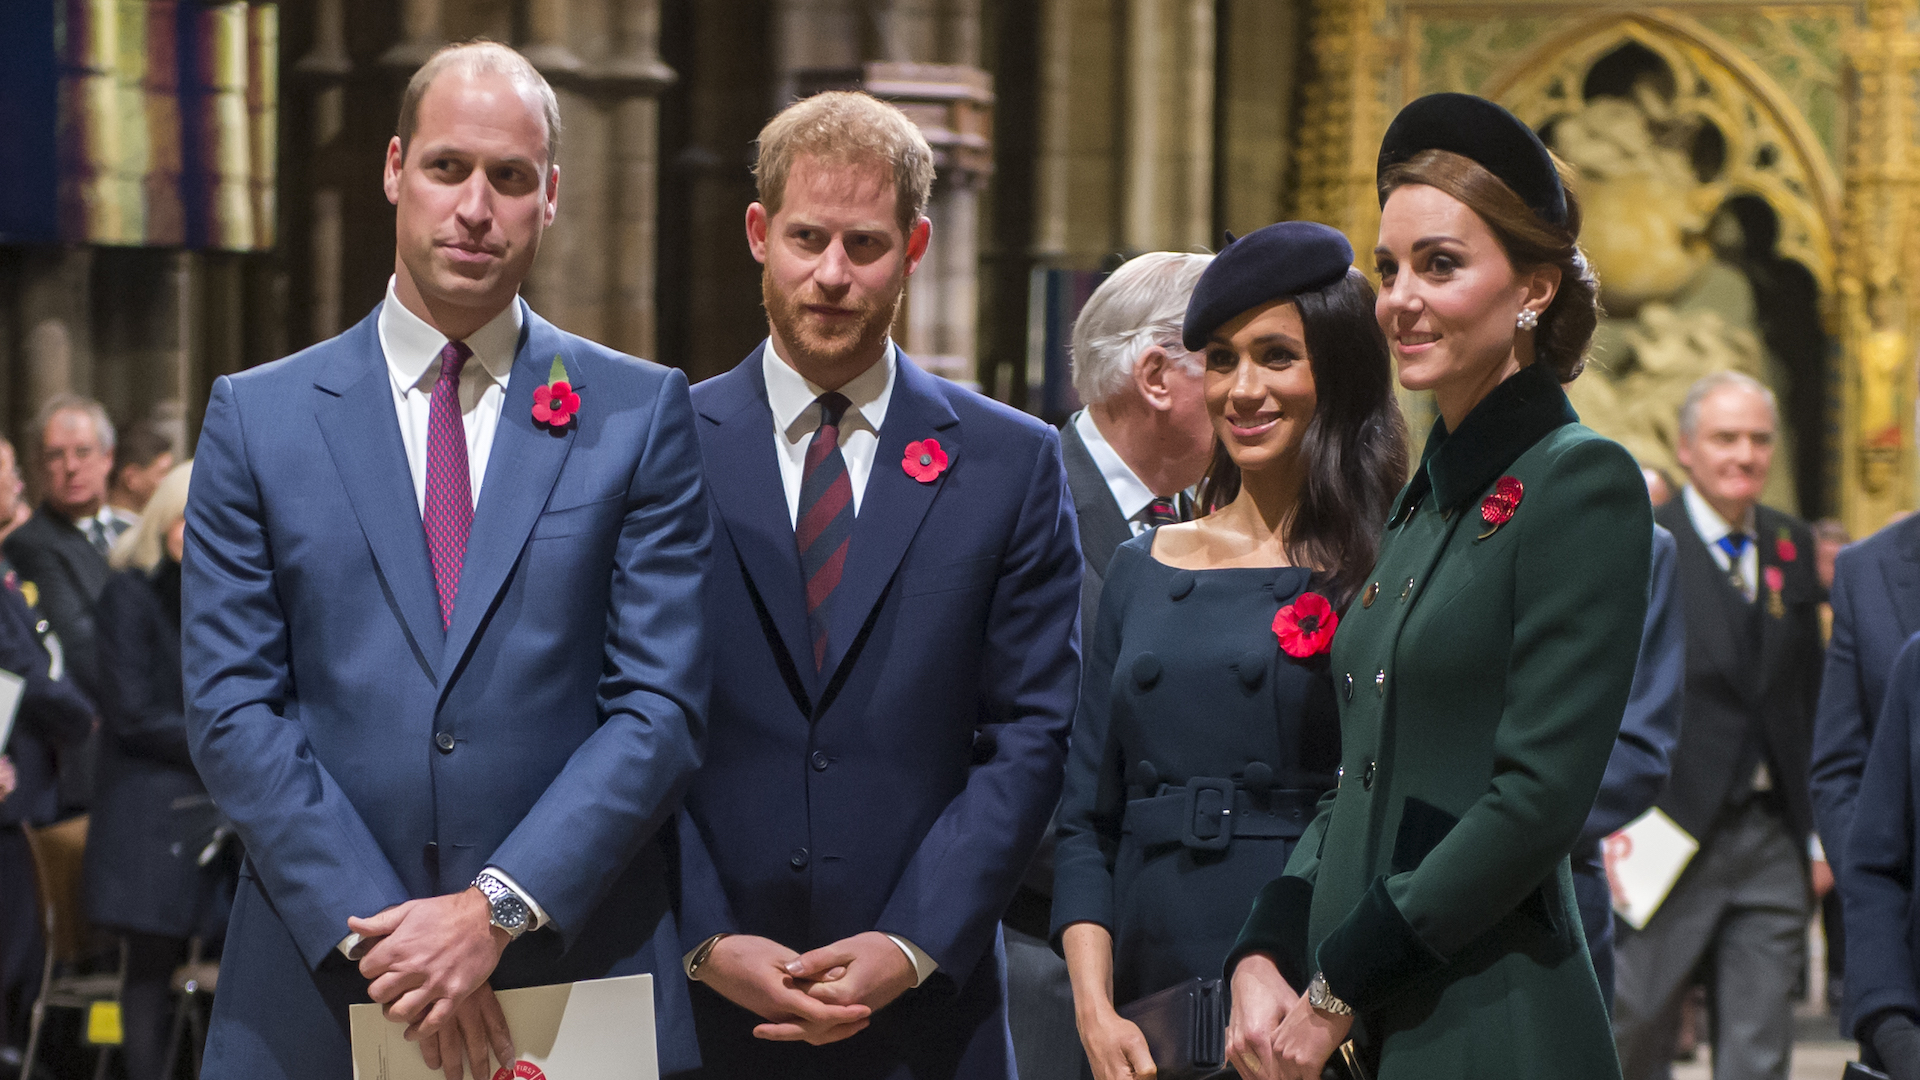 Prince William, Duke of Cambridge and Catherine, Duchess of Cambridge, Prince Harry, Duke of Sussex and Meghan, Duchess of Sussex attend a service marking the centenary of WW1 armistice at Westminster Abbey on November 11, 2018